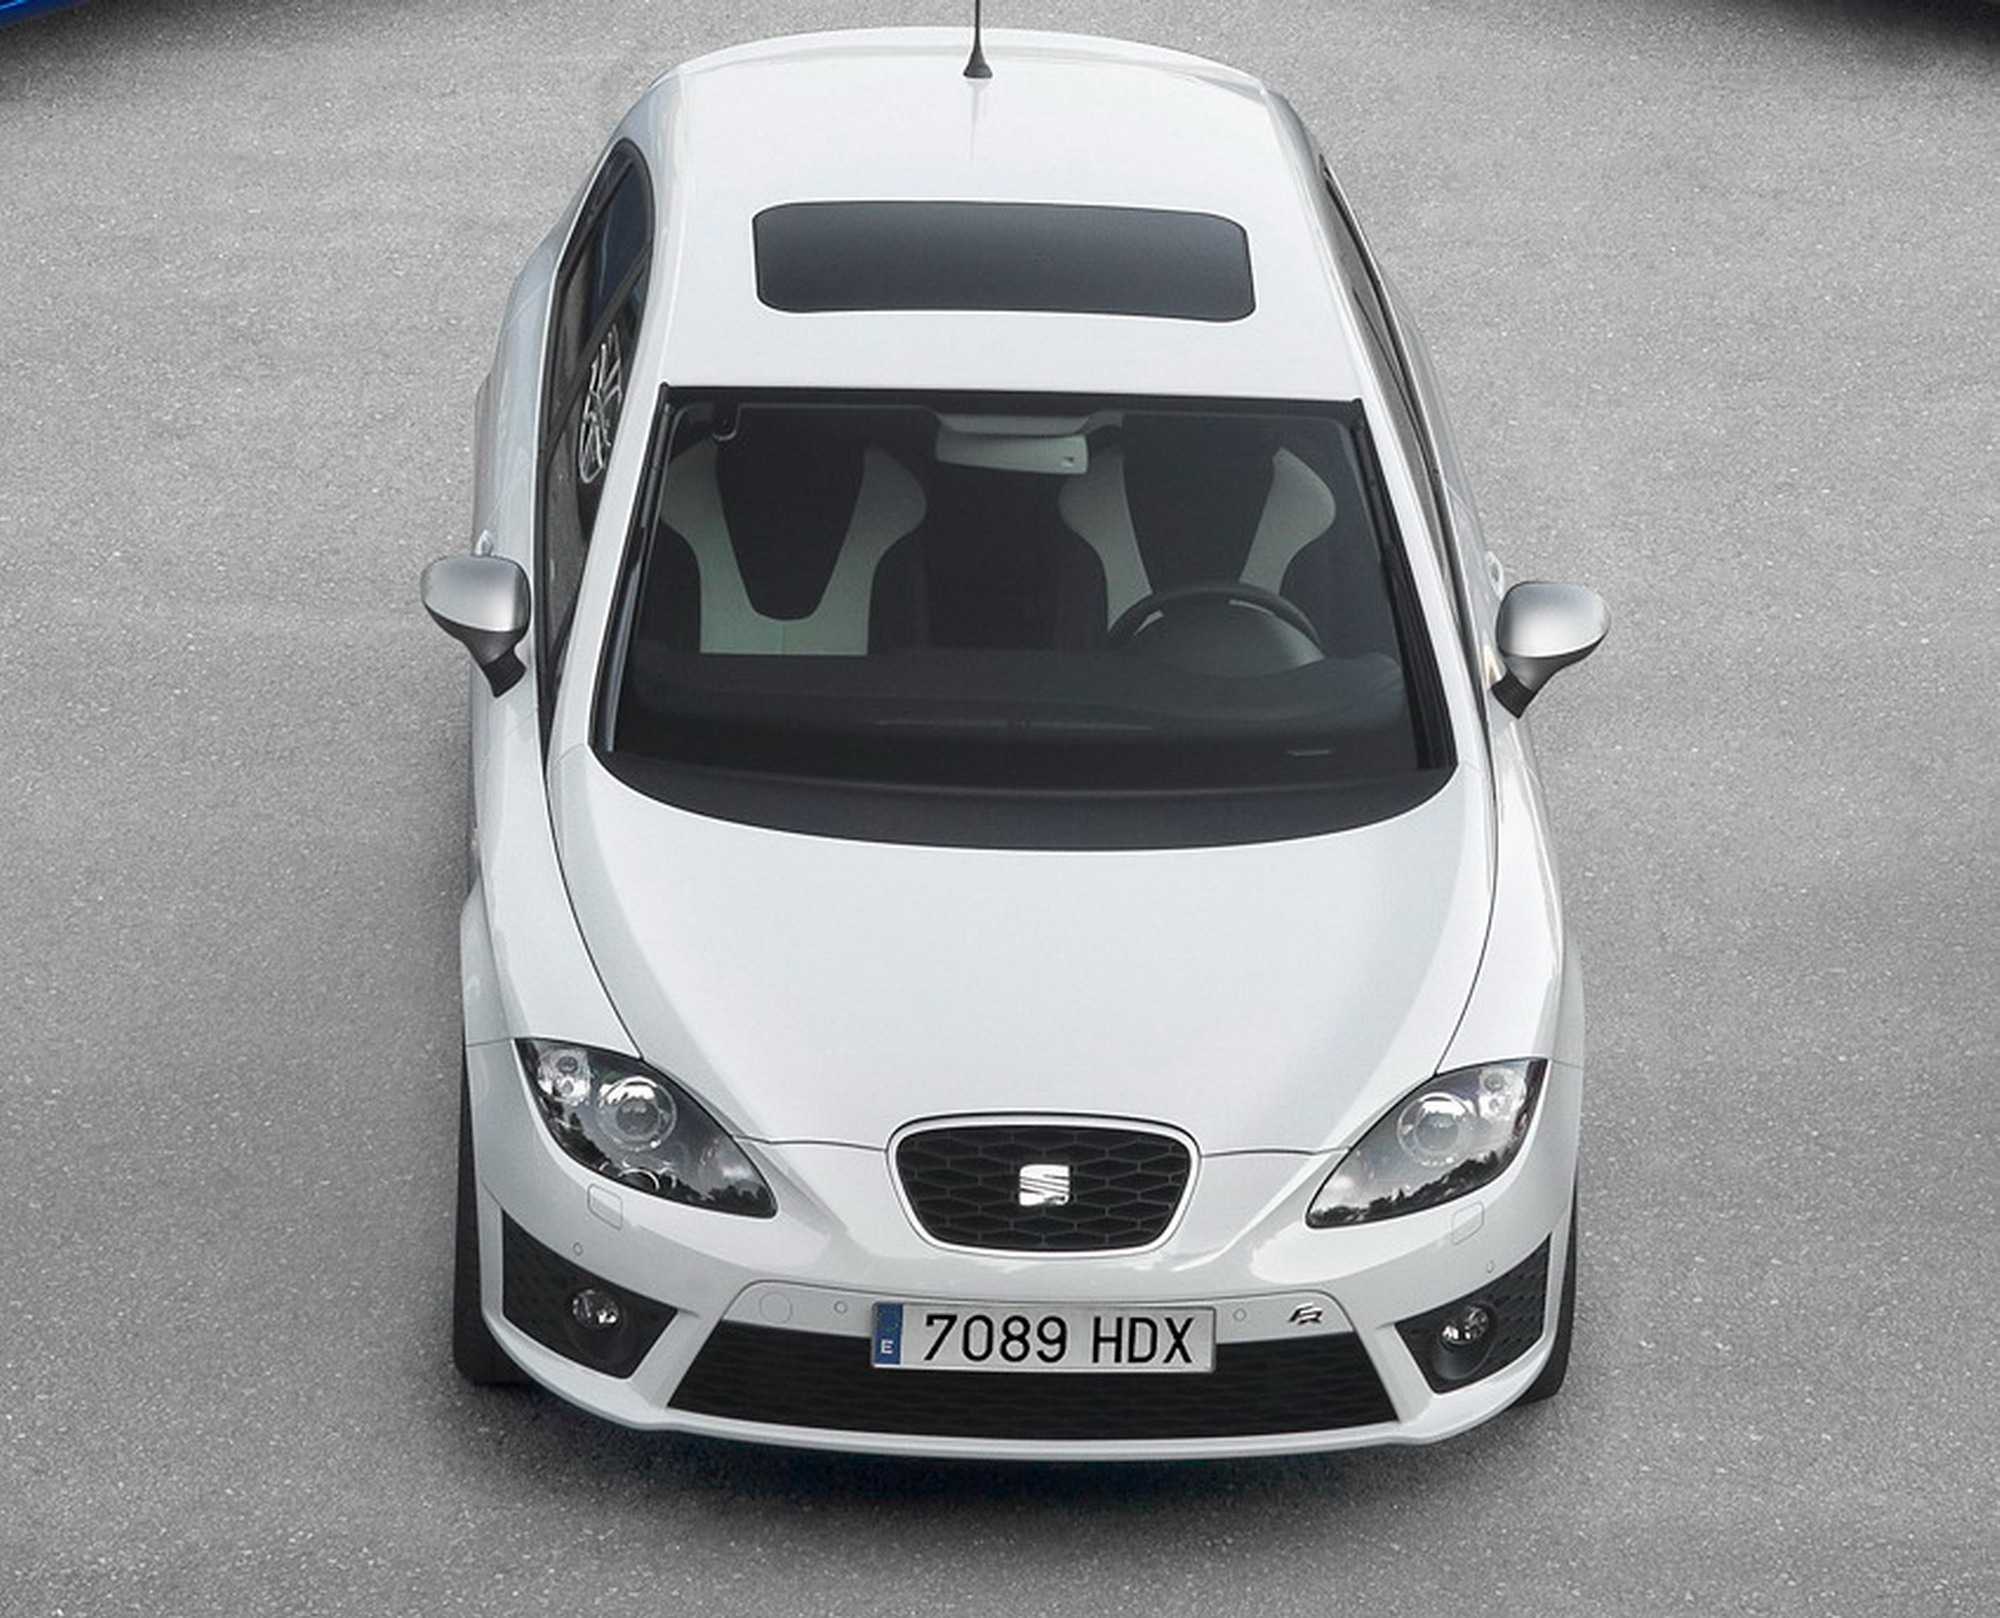 2011 seat leon fr gallery 411814 top speed. Black Bedroom Furniture Sets. Home Design Ideas